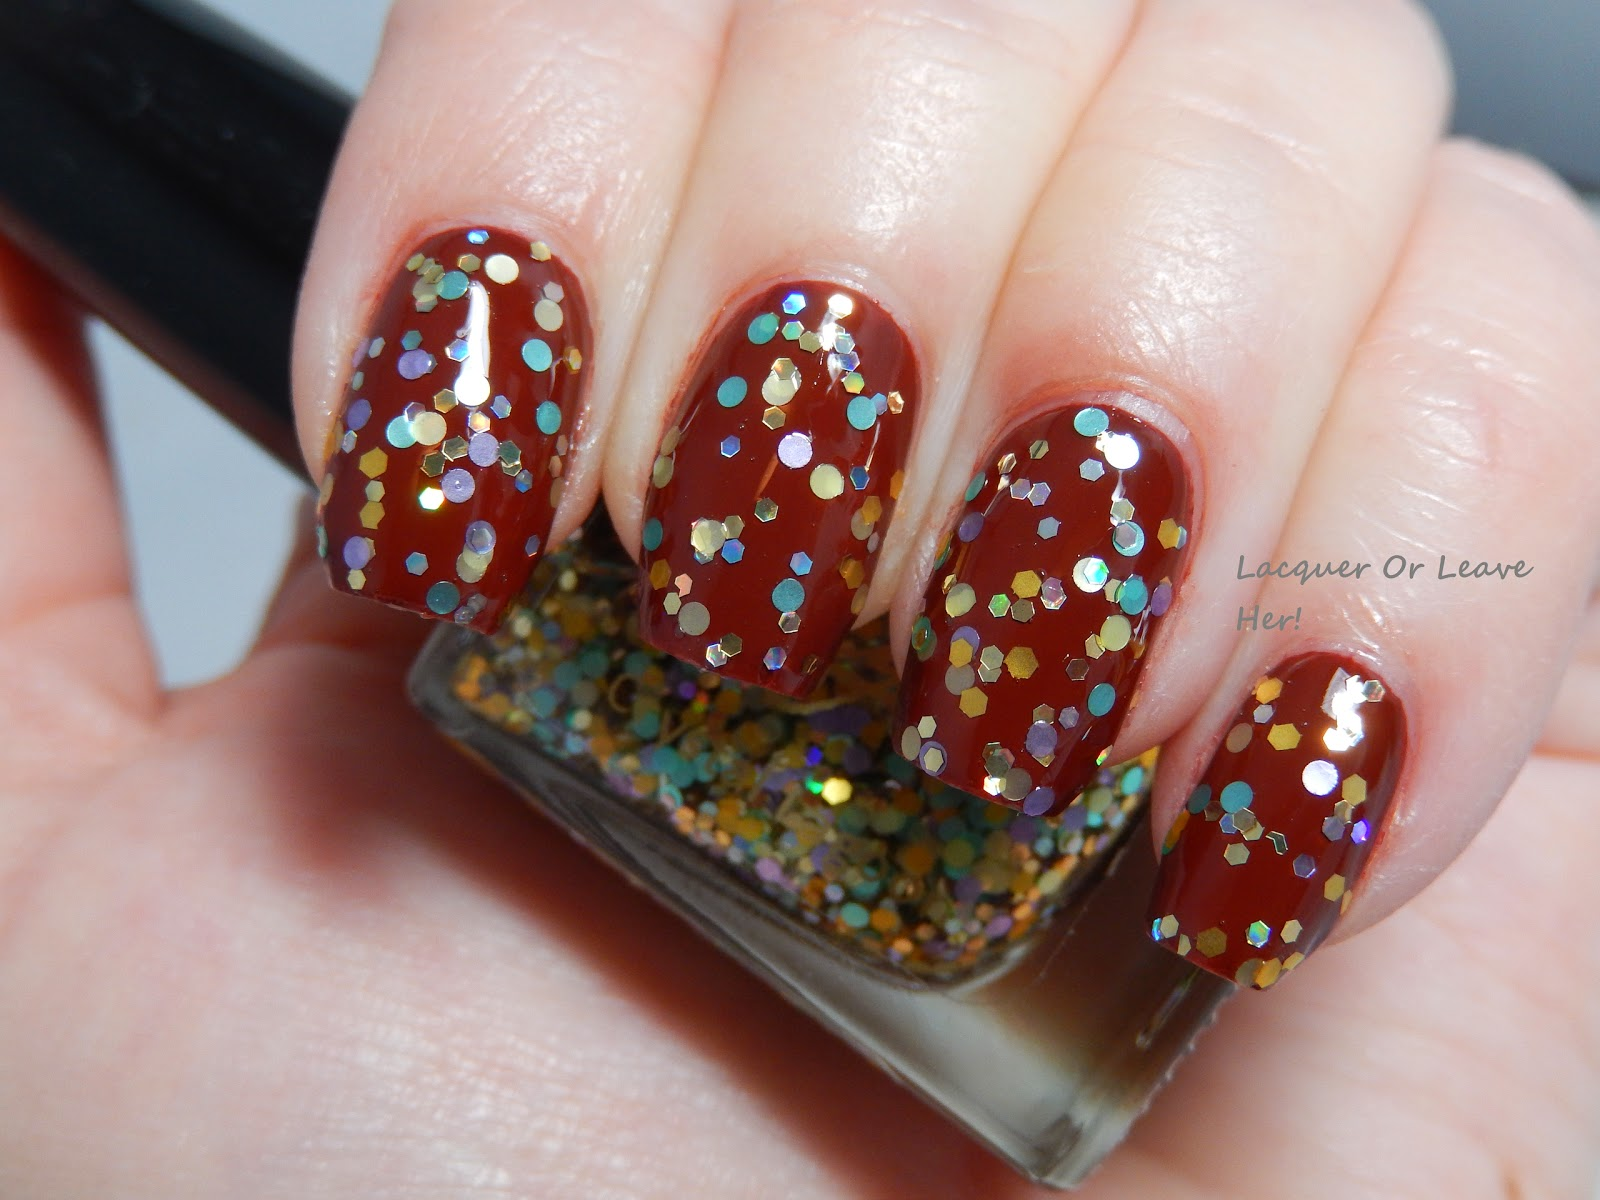 Nayll Crystal Lagoon over China Glaze Brownstone